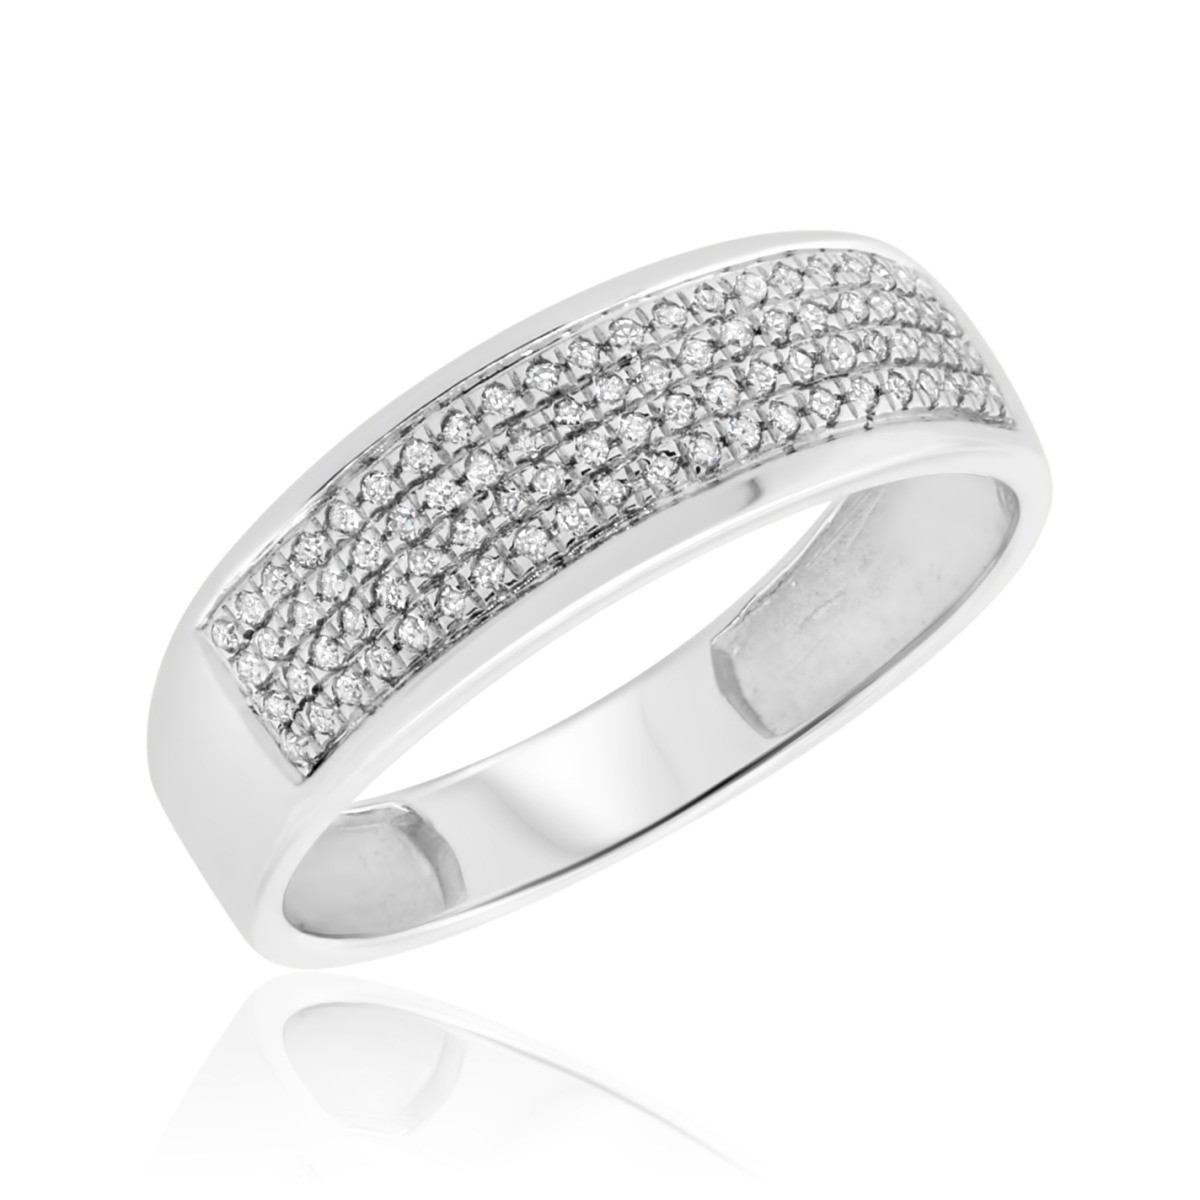 1/5 Carat T.W. Diamond Ladies Wedding Band  10K White Gold